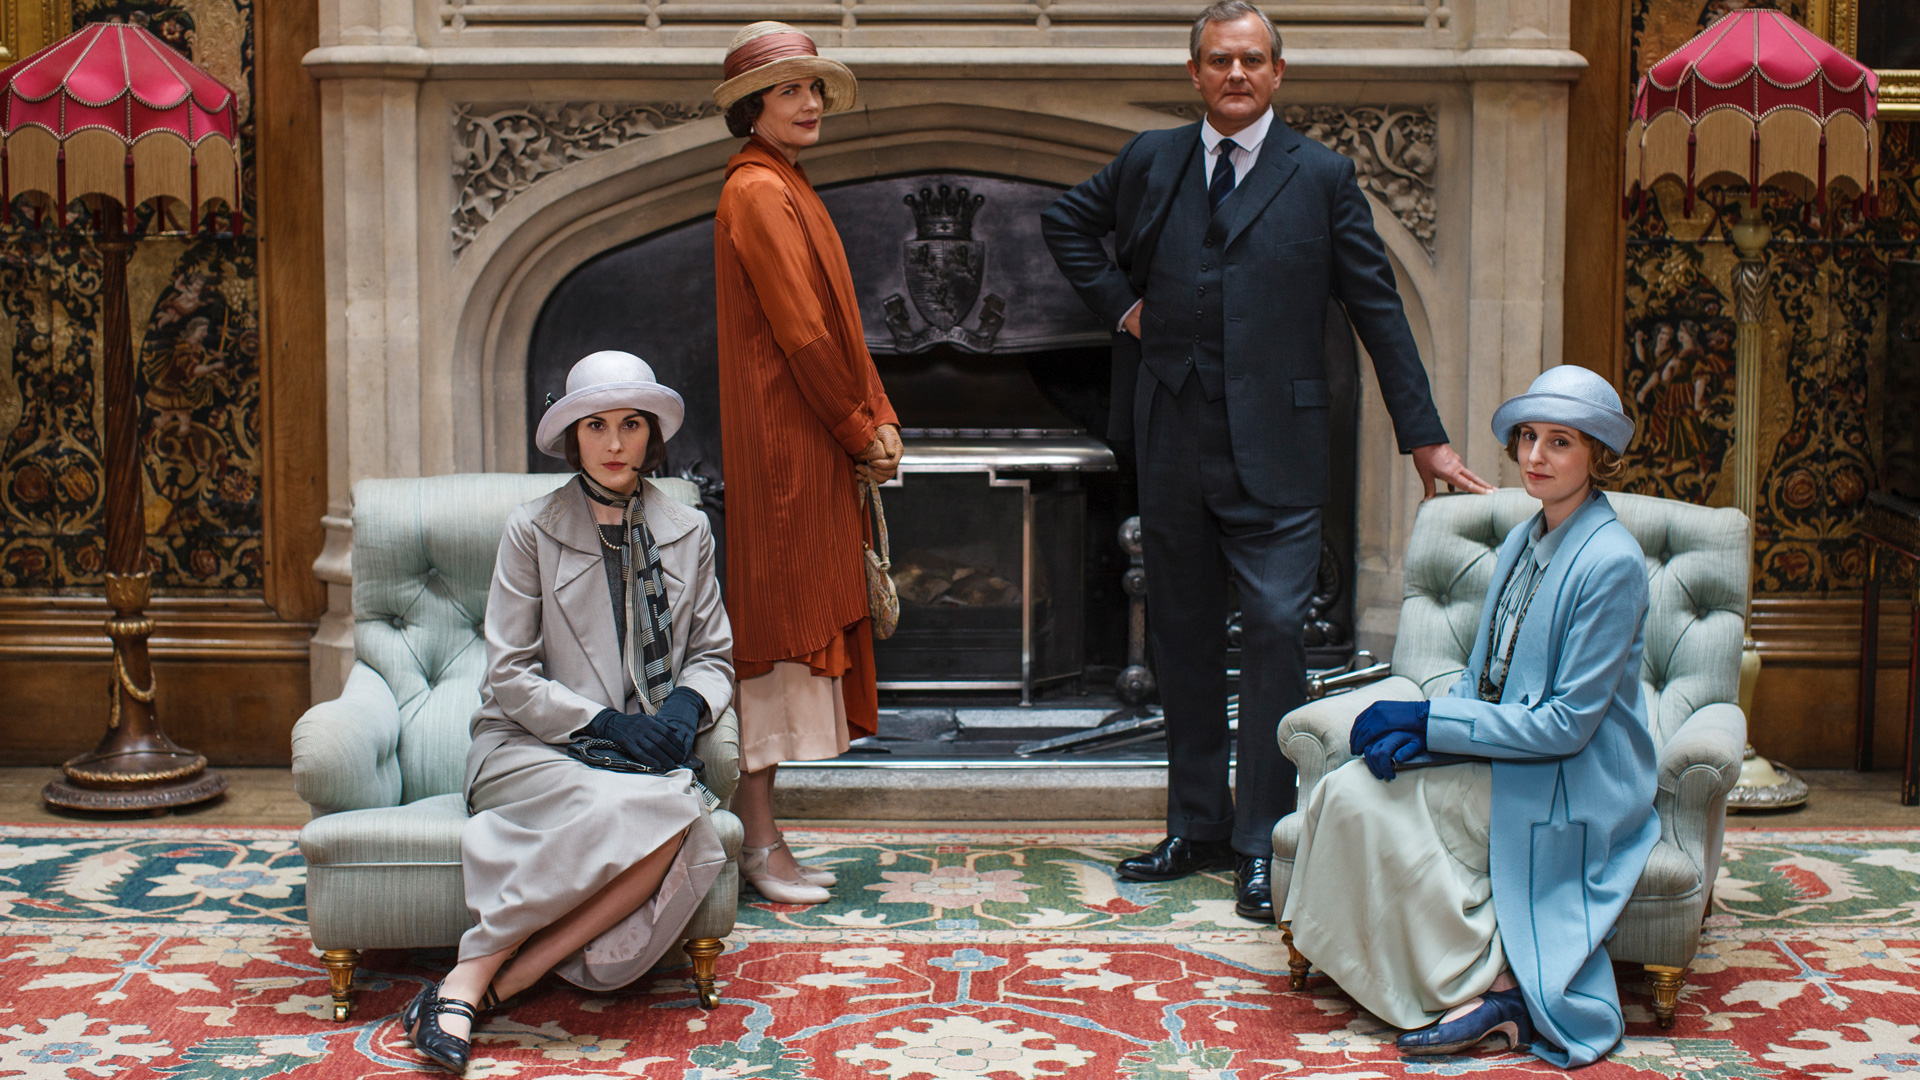 Downton Abbey, Season 6: Celebrate the Final Season | Season 6 ...